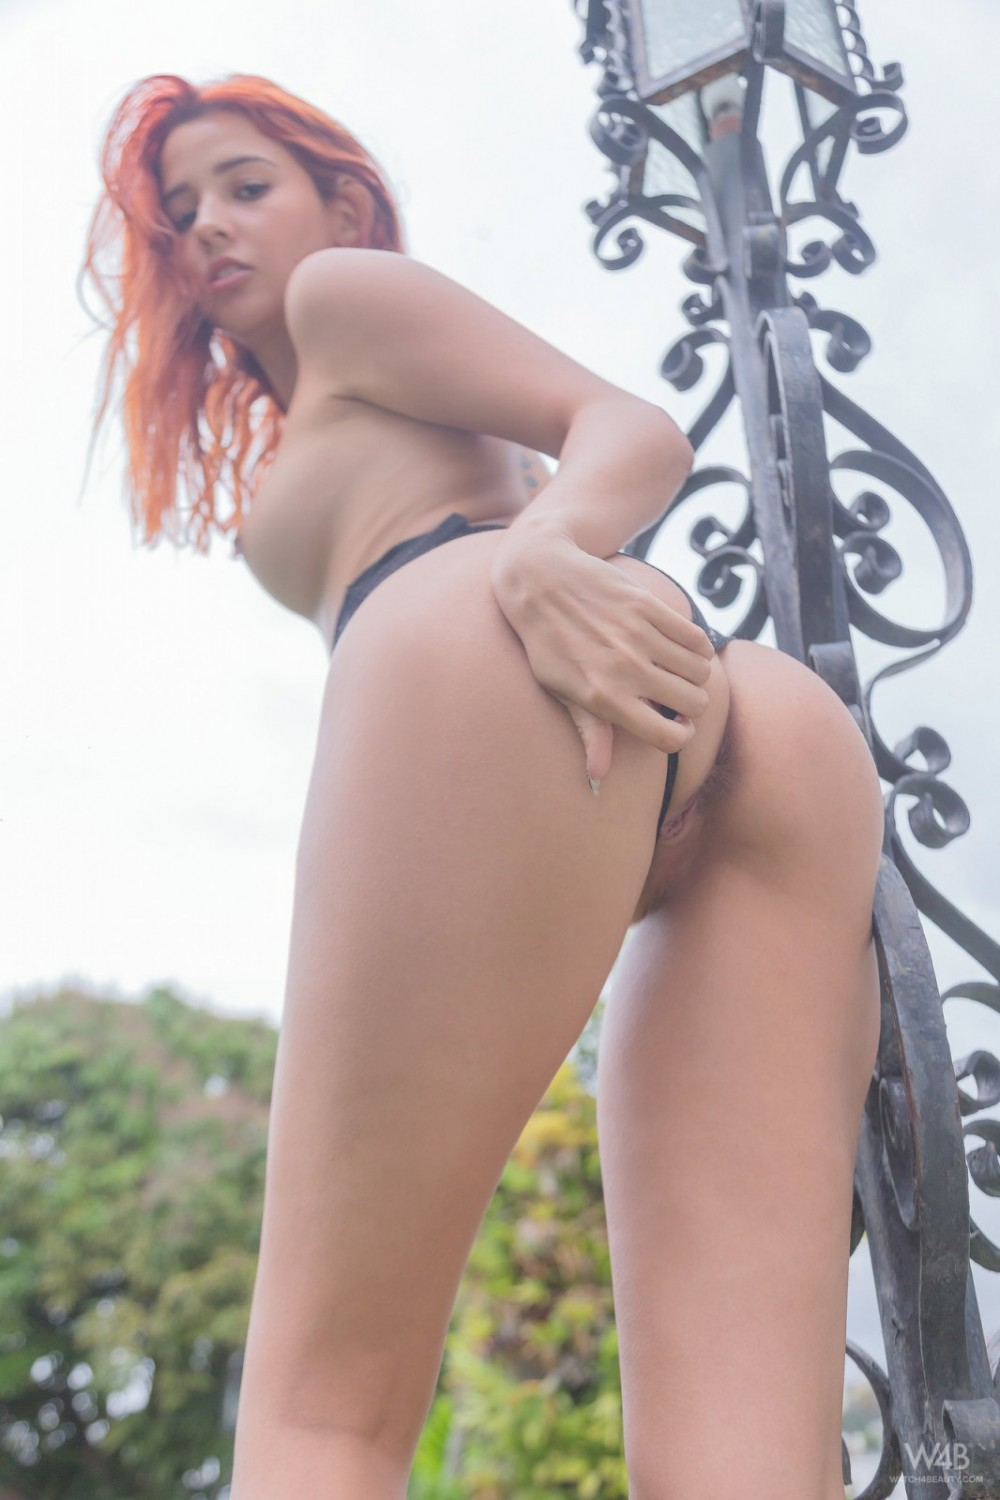 Sticky lollipop deep inside a ginger pussy